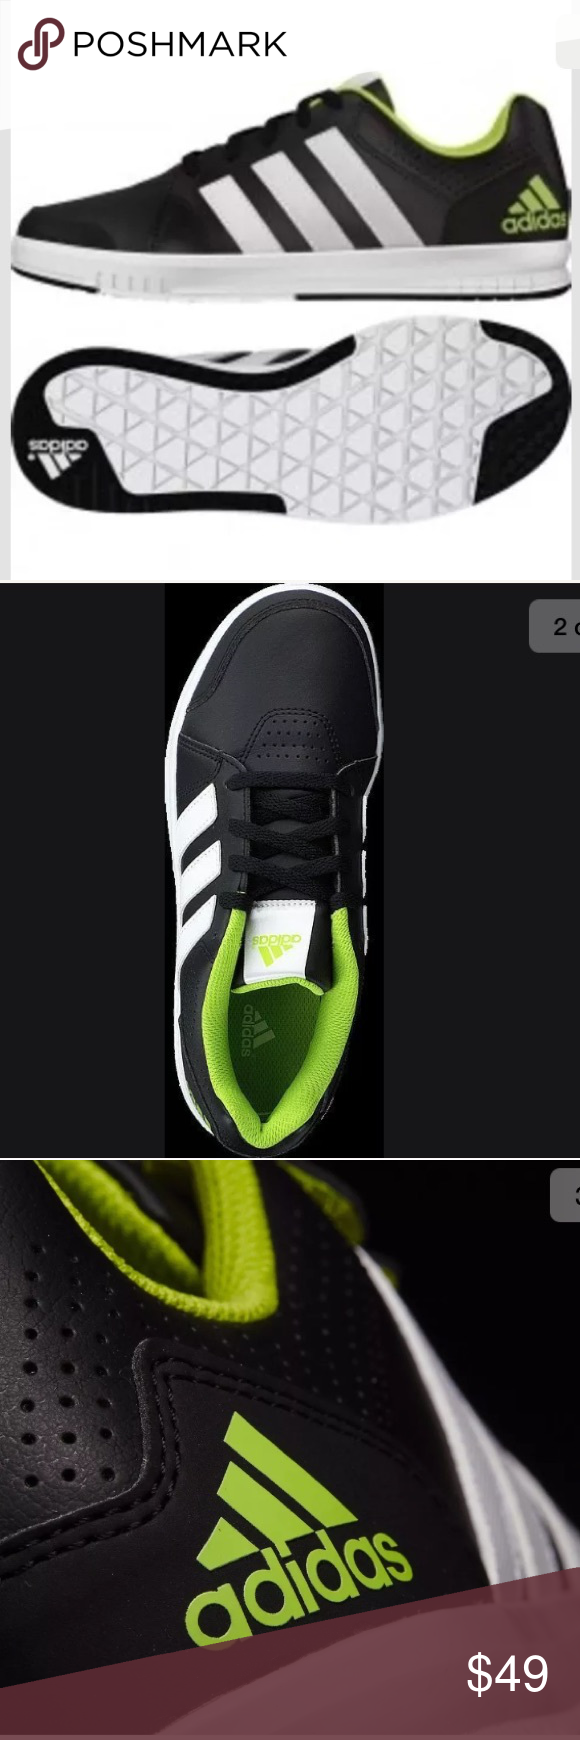 Adidas LK Trainer 7K Sportive Sneakers 4 6 Synthetic upper